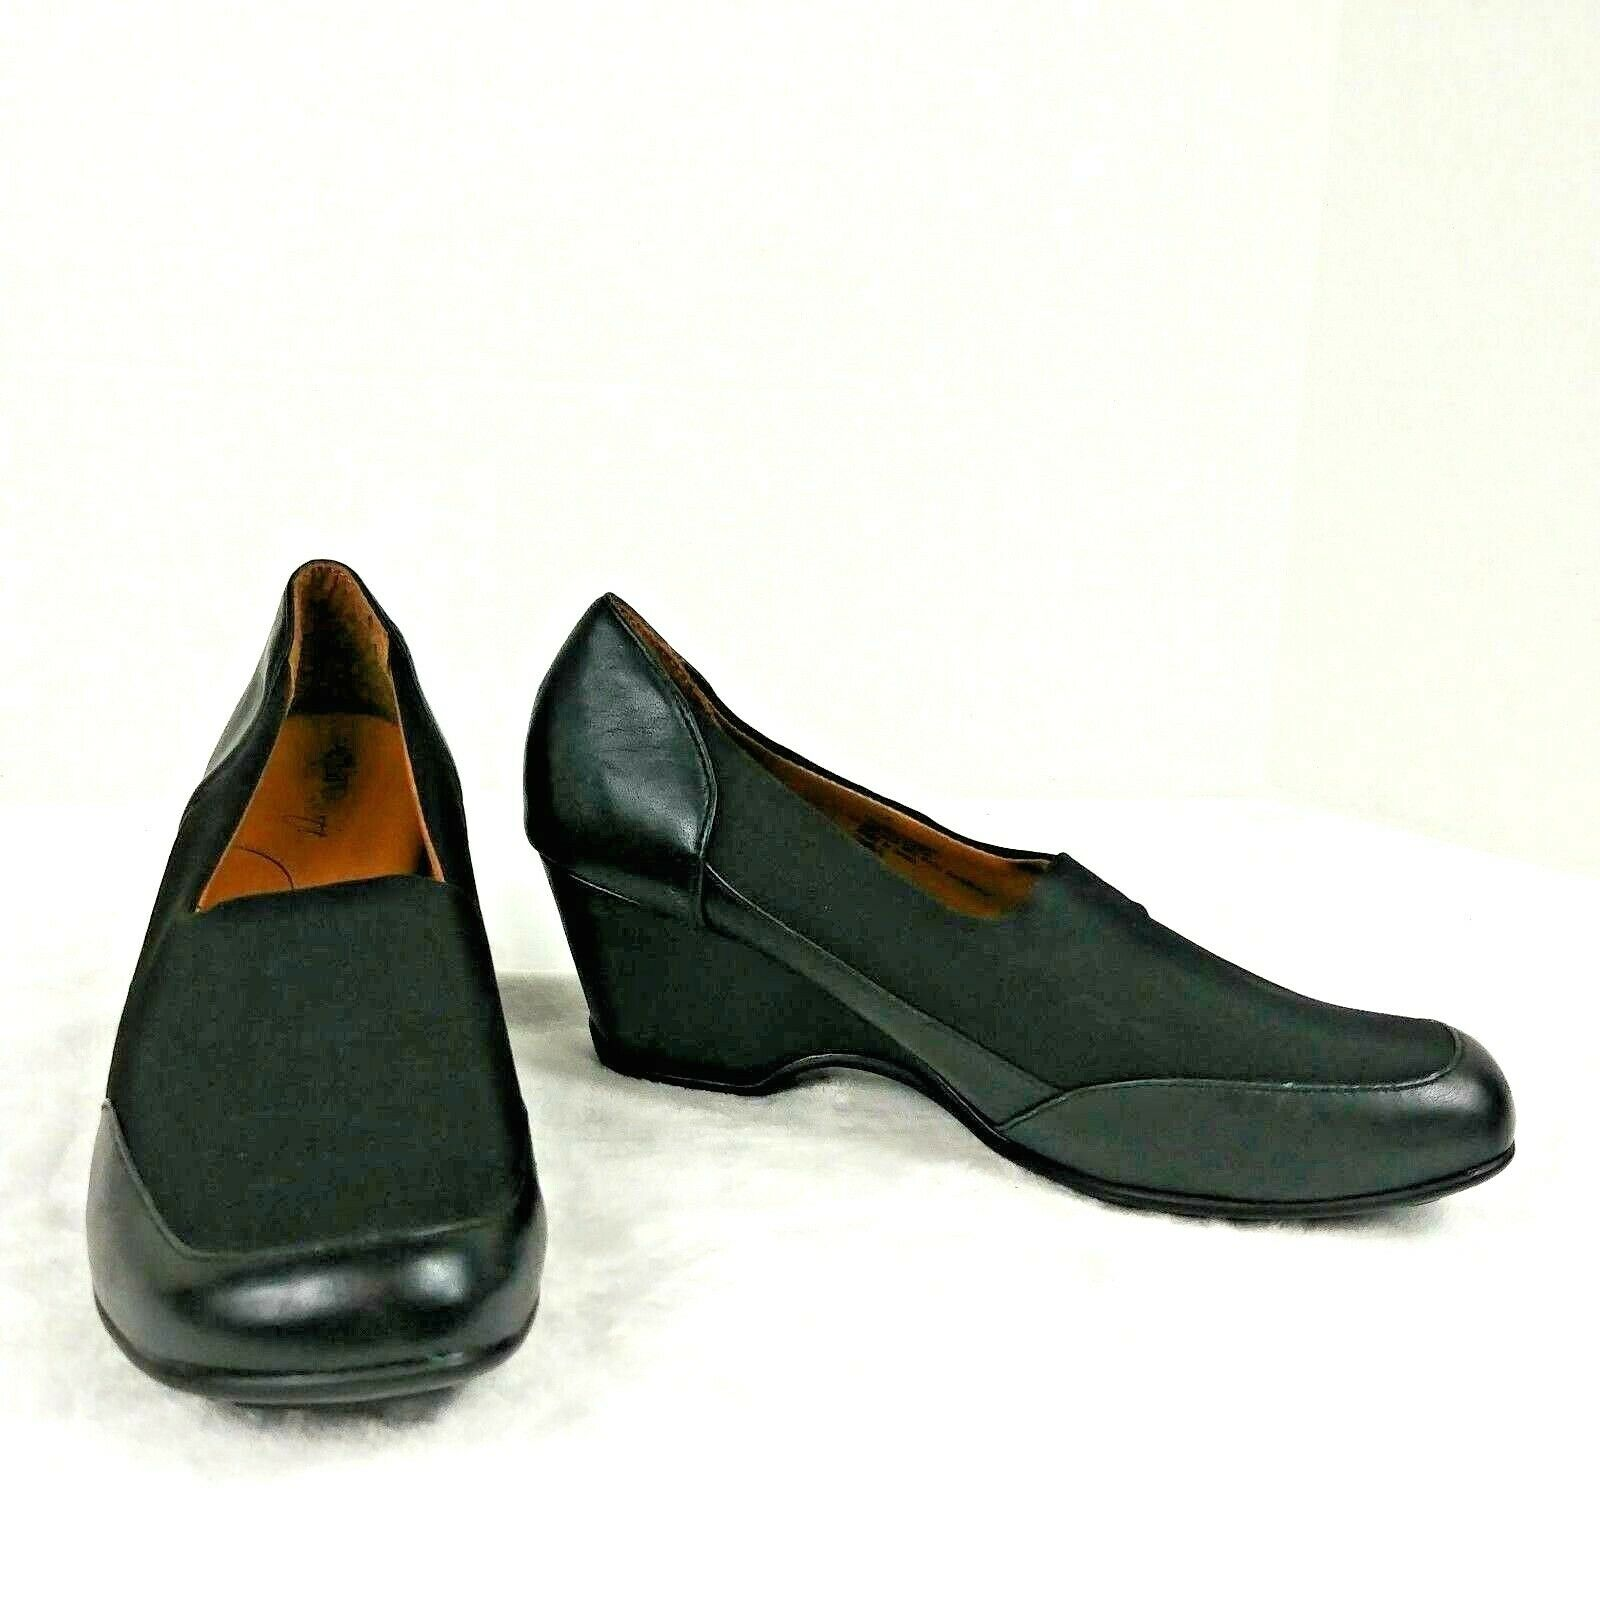 Euro Soft by Sofft shoe wedge Women nadalee black leather stretch comfort Sz 8 M